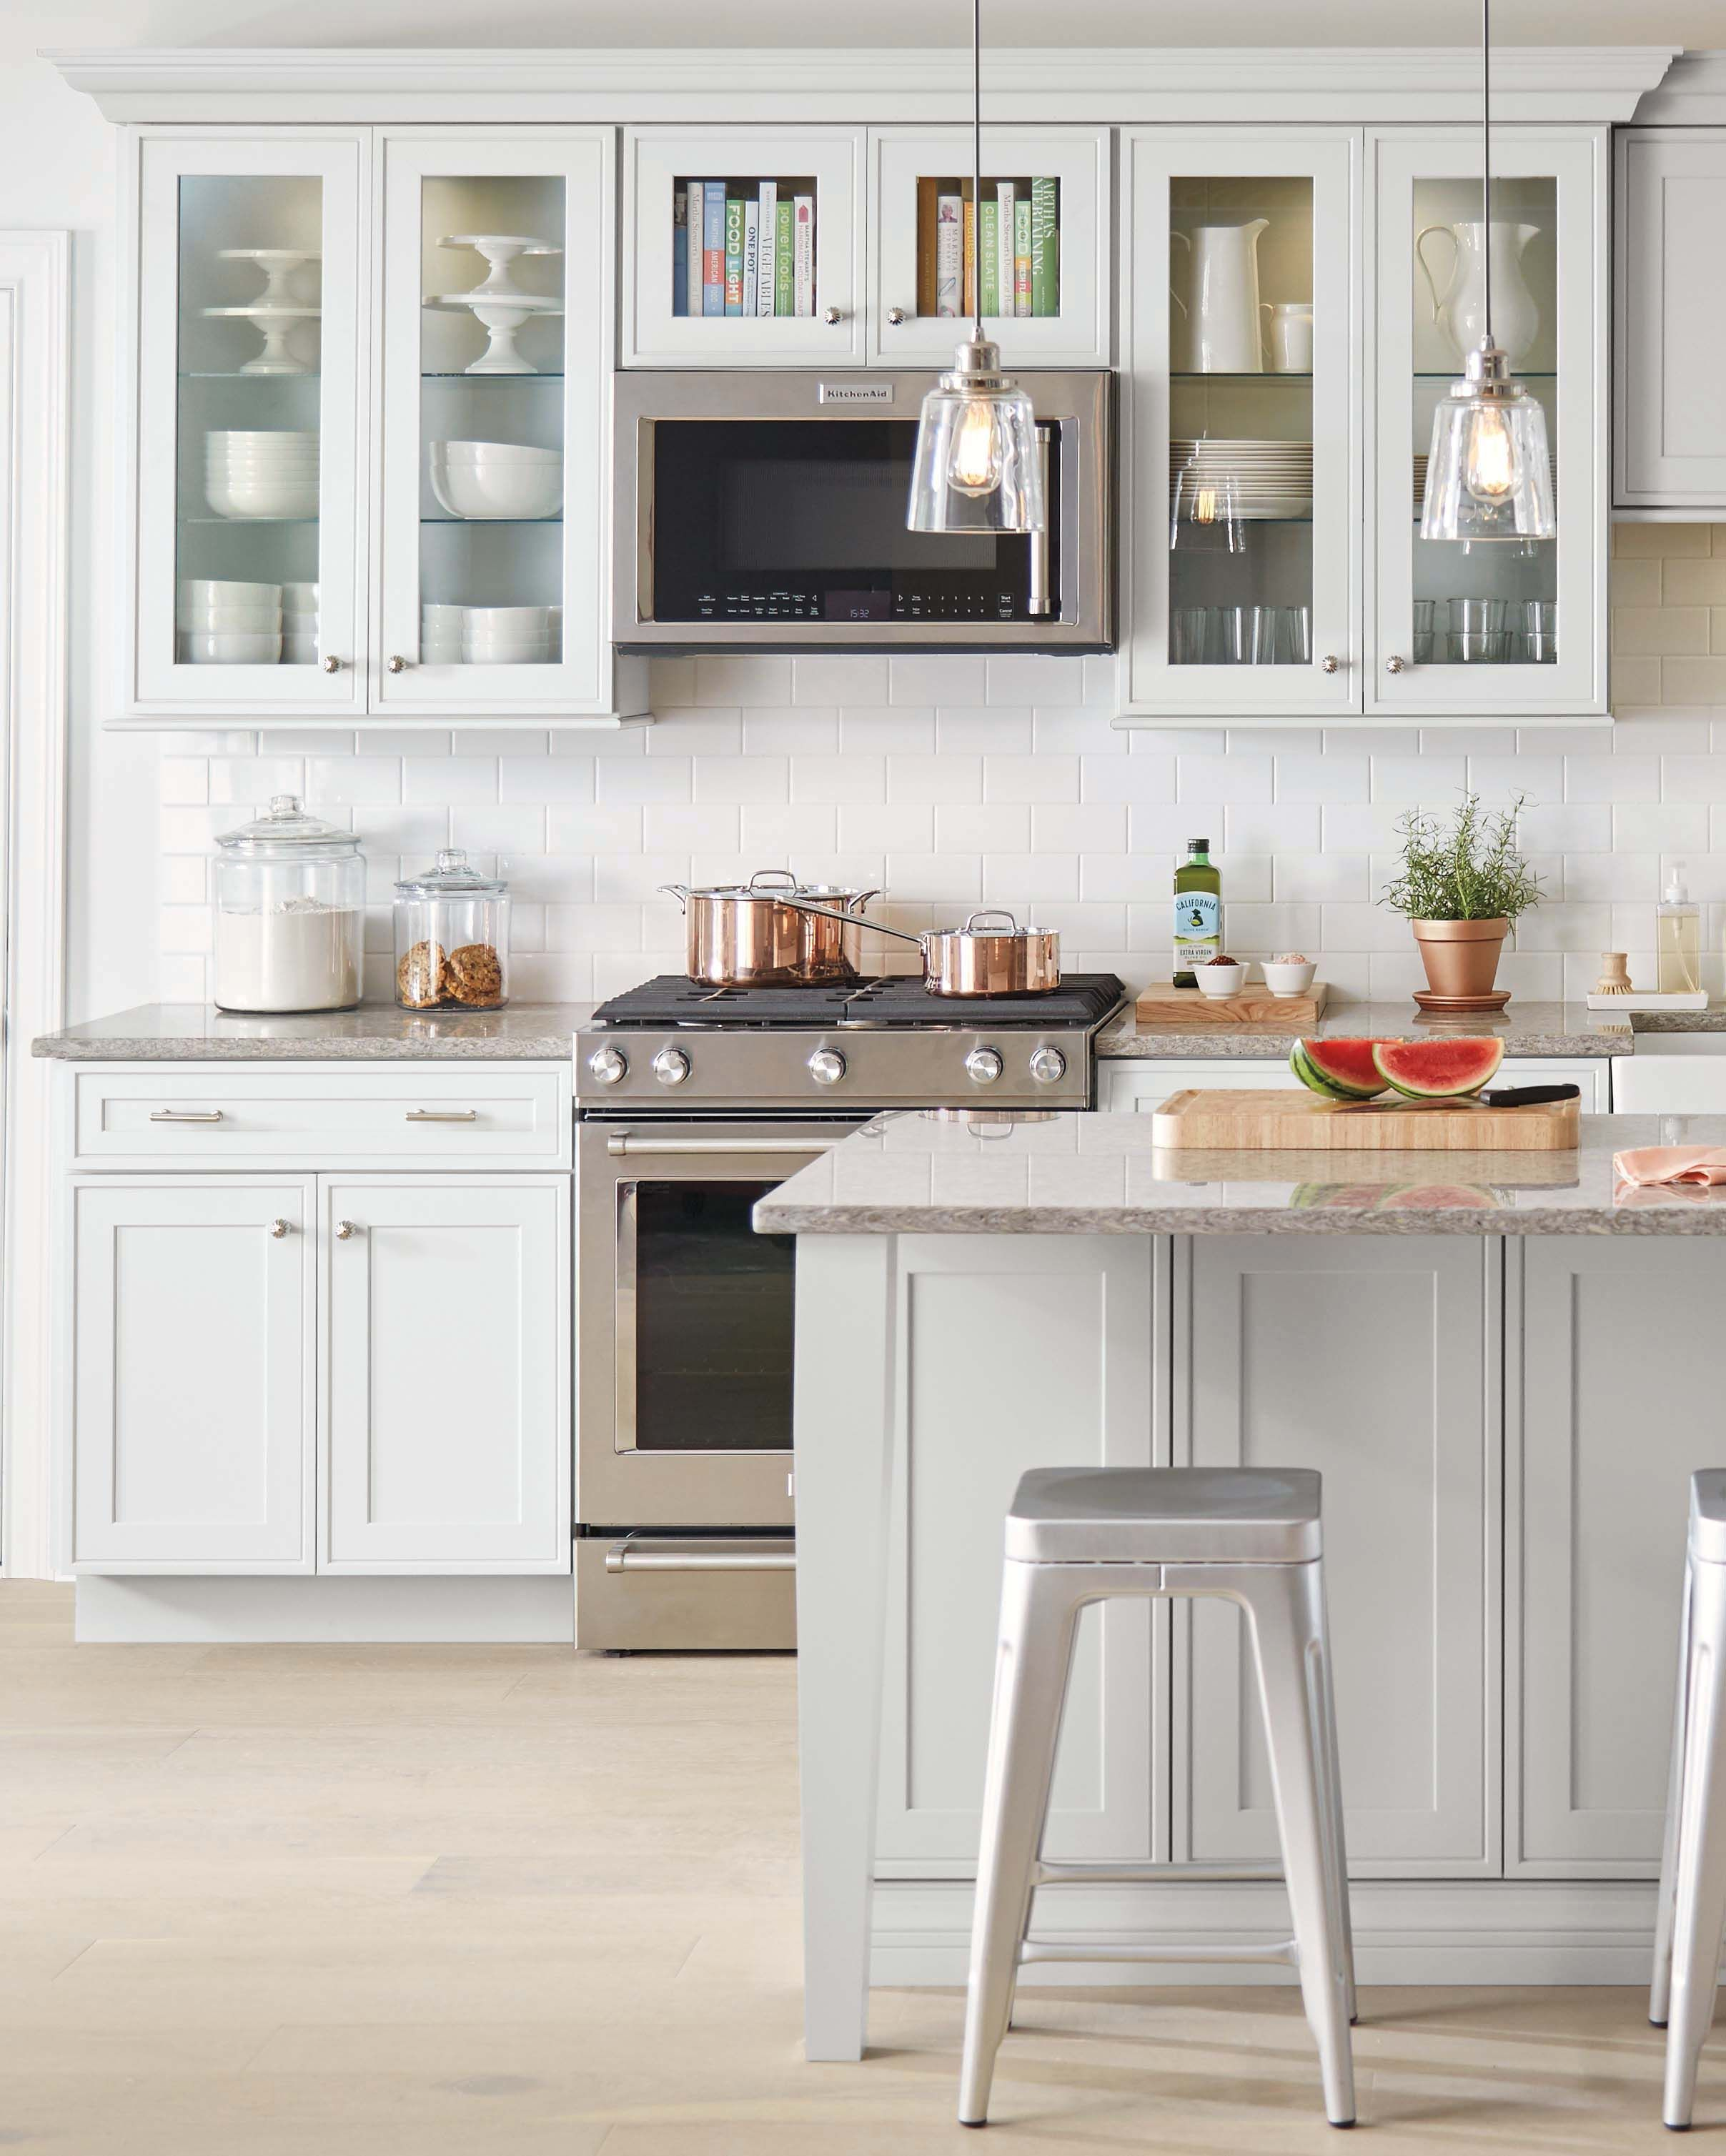 Kitchen Remodel Tips to Live By The Art of Functional Design